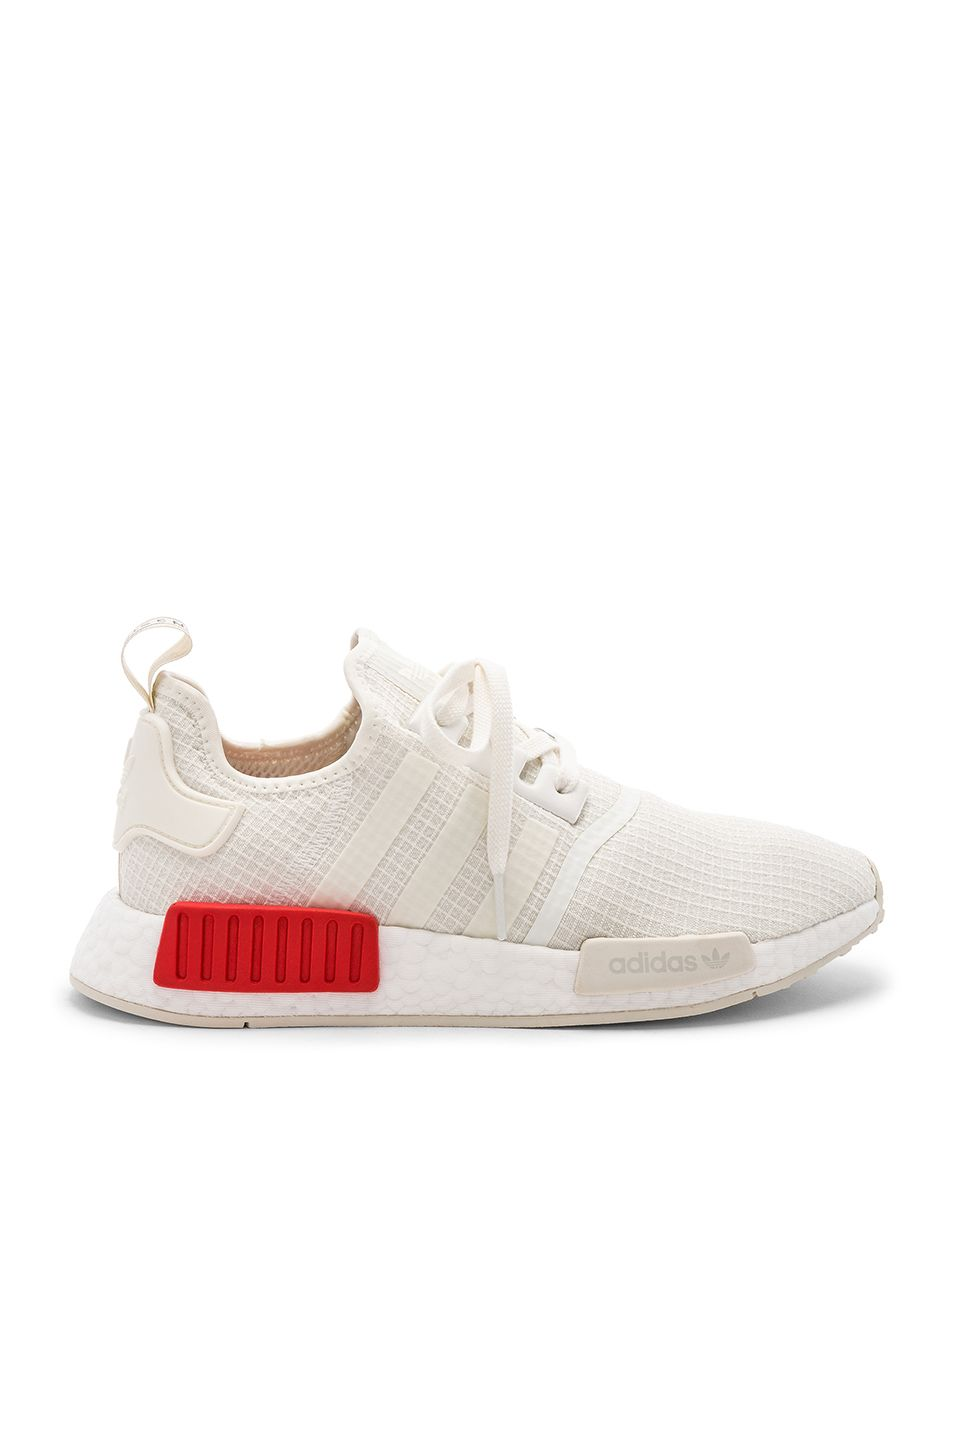 wholesale dealer a71a8 6feef Image 1 of adidas Originals NMD R1 in Off White & Off White ...